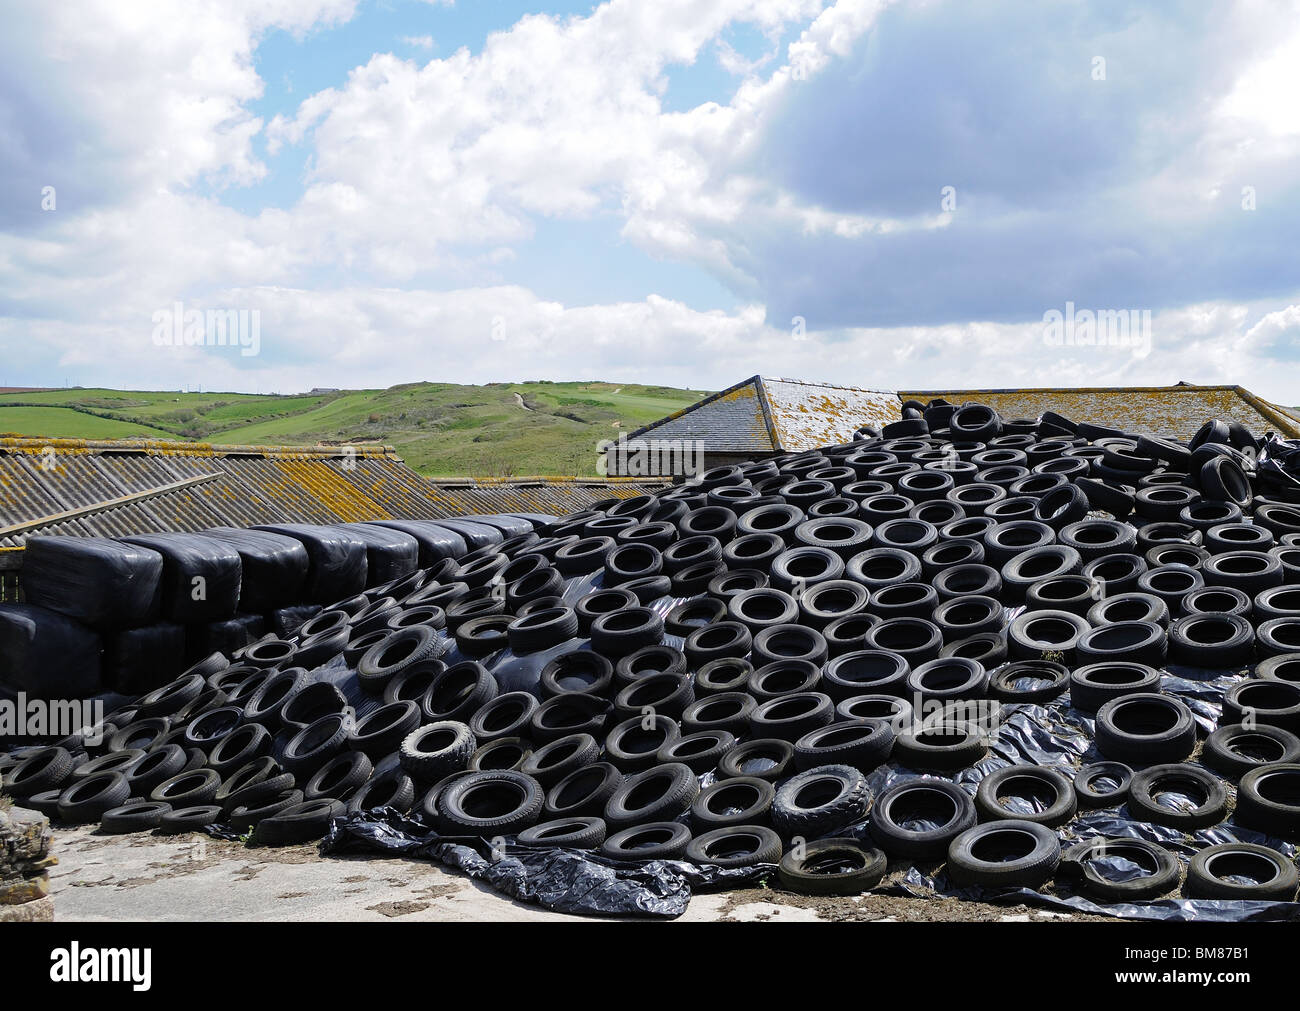 old tyres used to cover and protect winter feed for animals on a farm in cornwall, uk - Stock Image